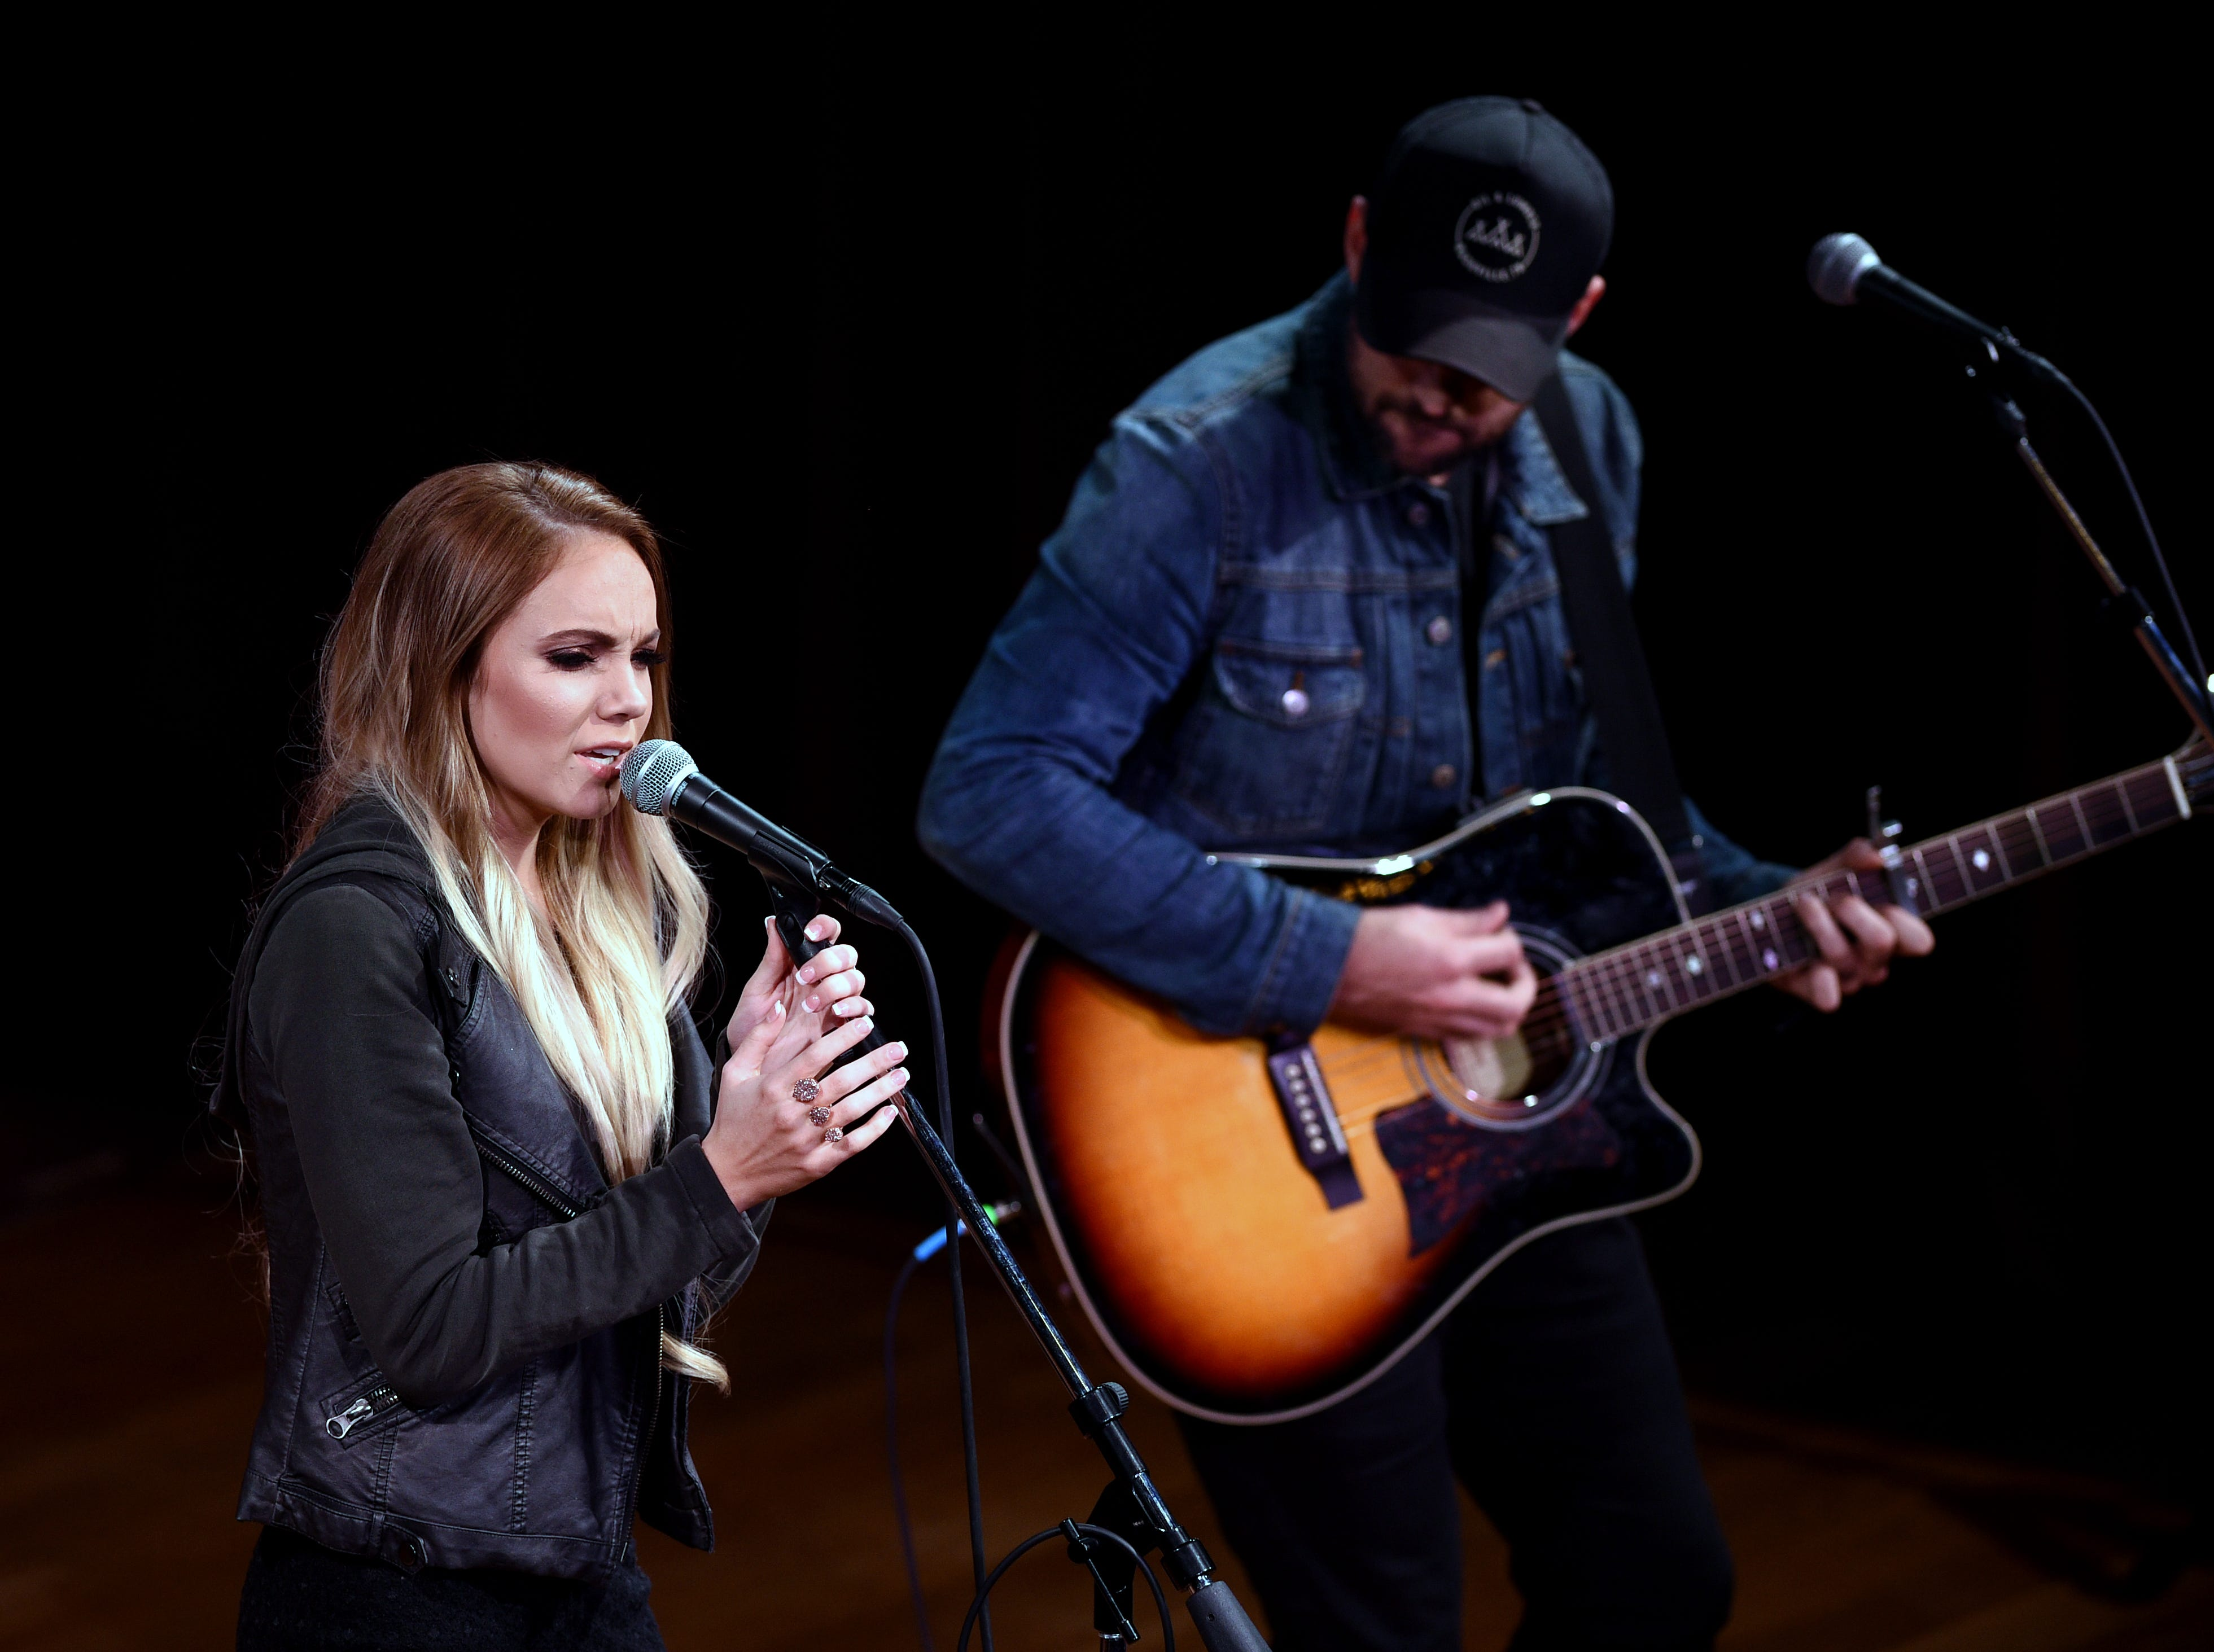 Danielle Bradbery is scheduled to play the Chevy Riverfront Stage at CMA Fest 2019.